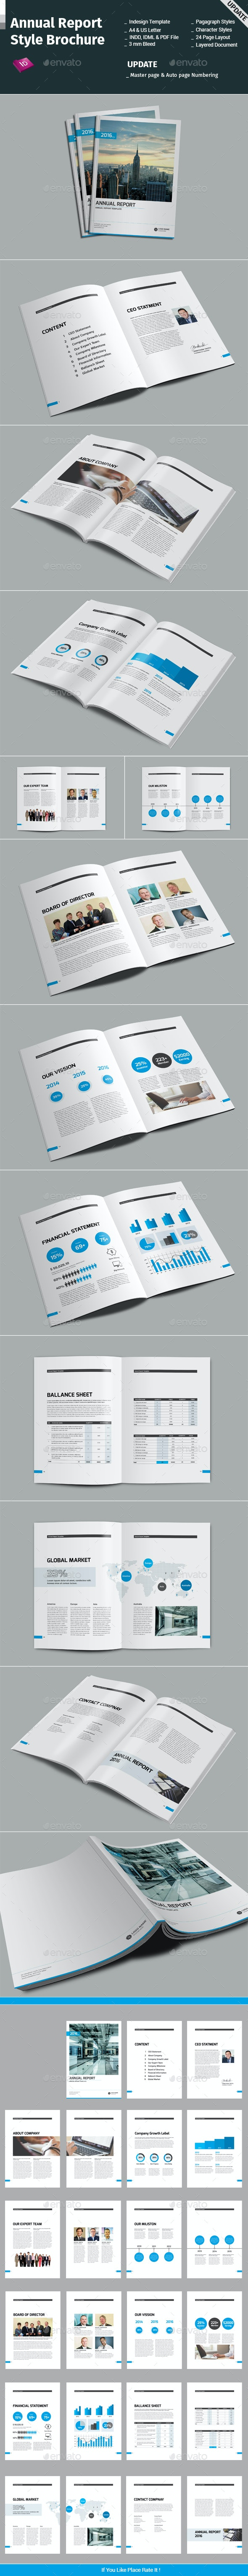 Annual Report Style Brochure - Informational Brochures